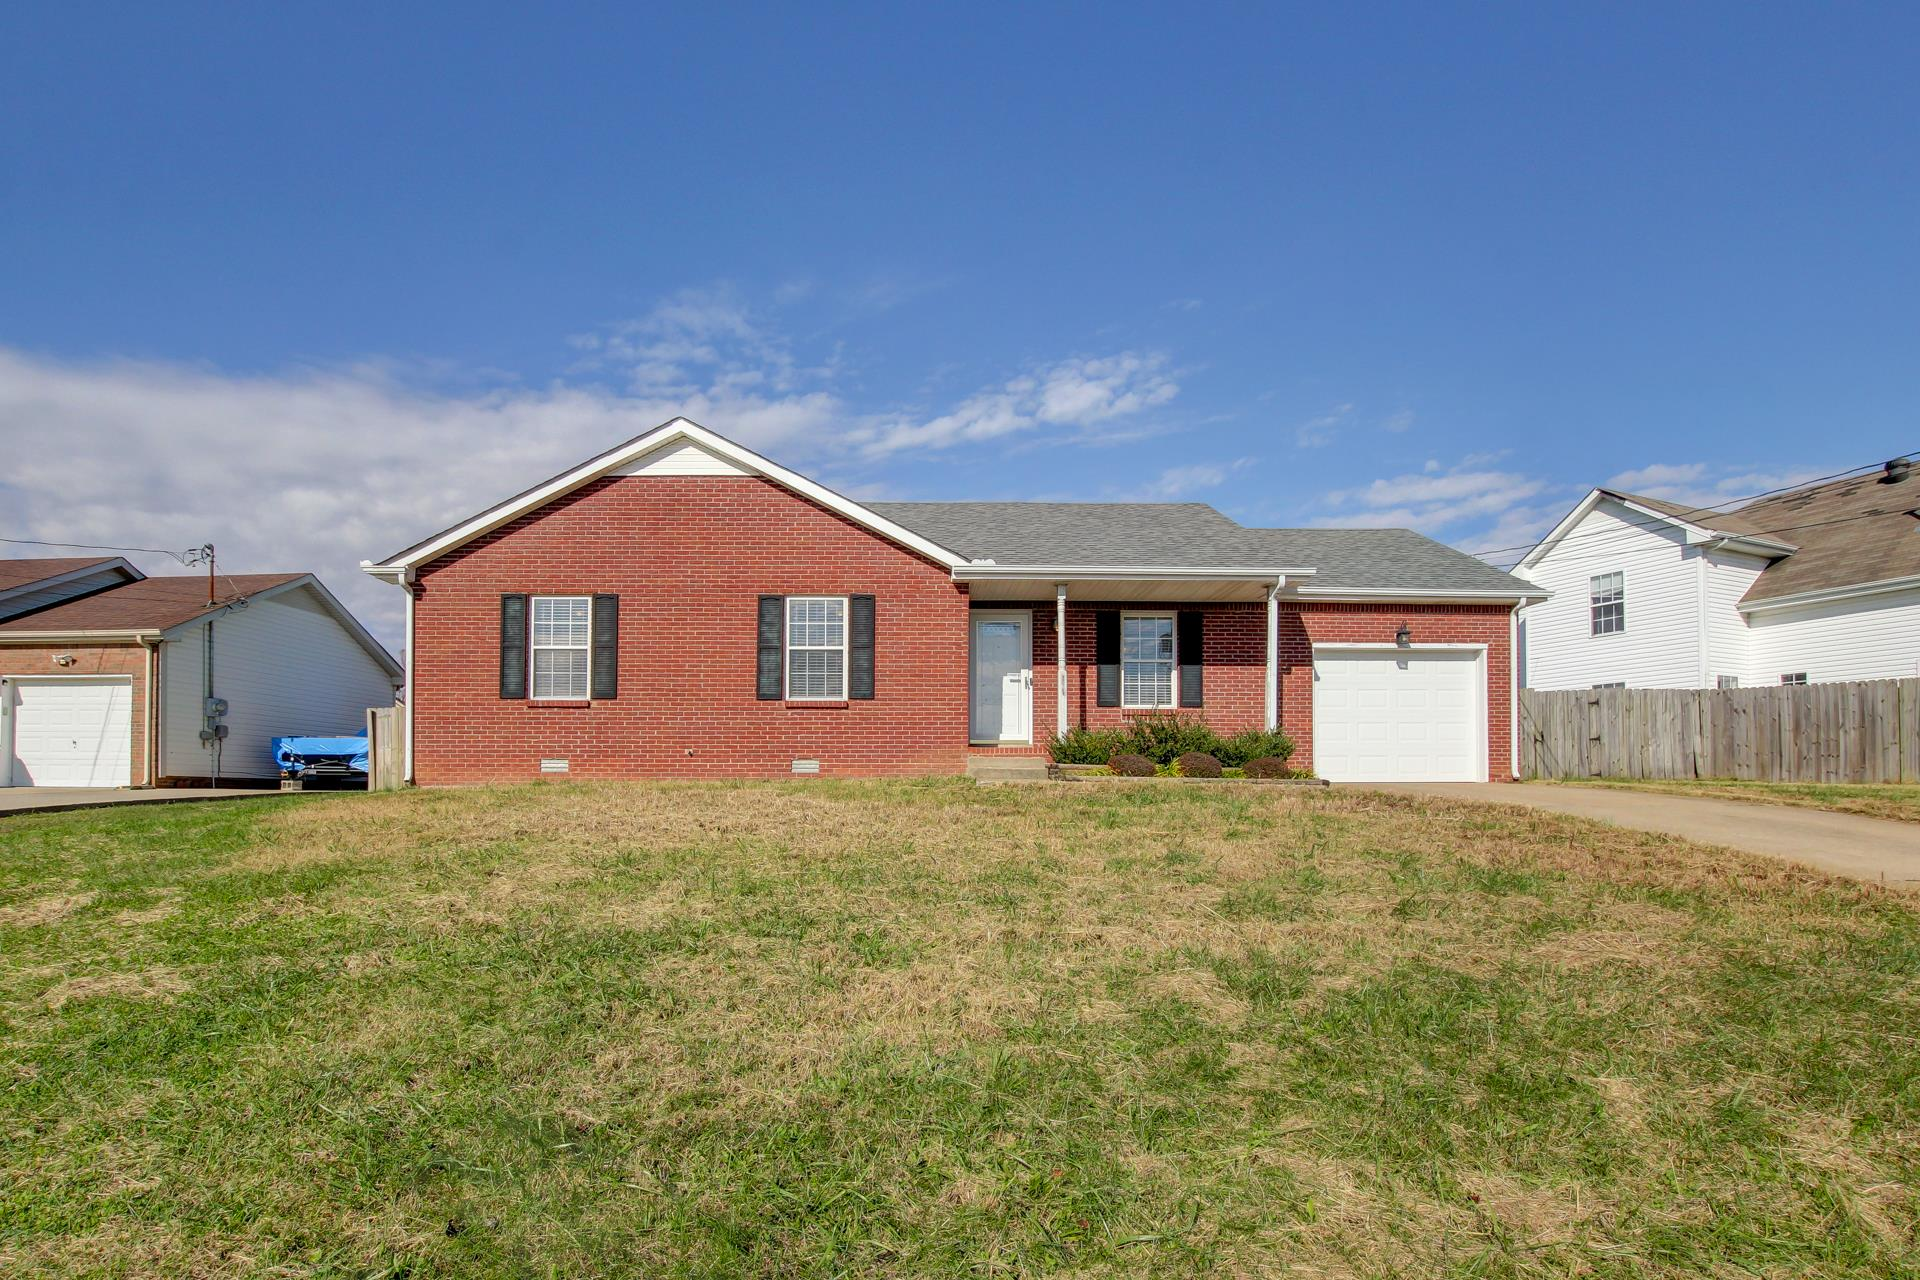 1279 Barbee Ln, Fort Campbell, Tennessee